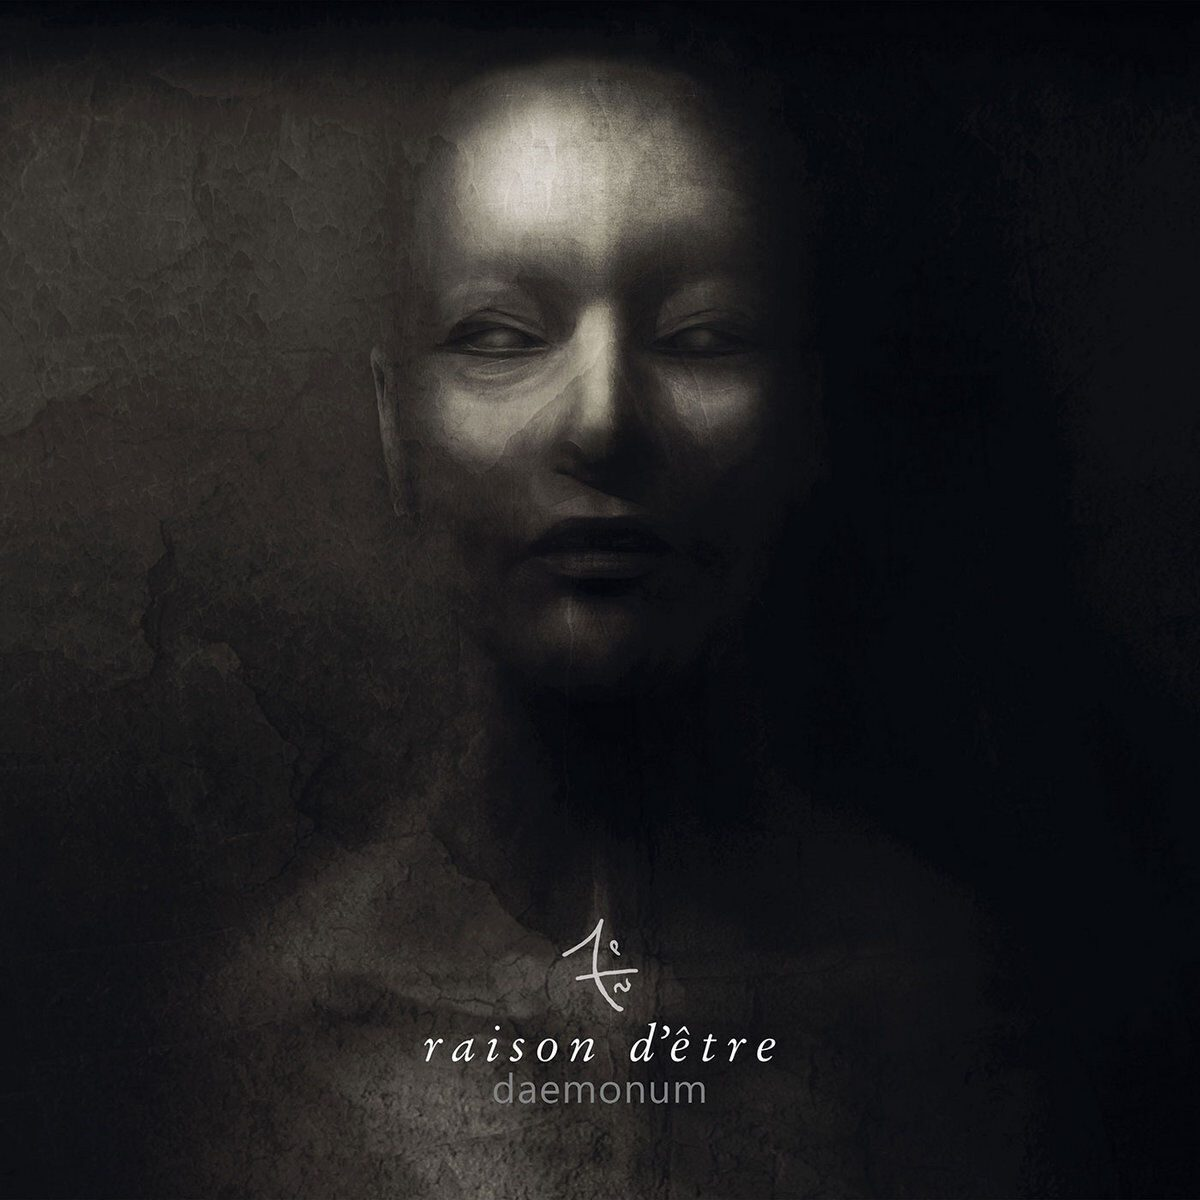 Raison d'être returns with 'Daemonum' - check out the first track